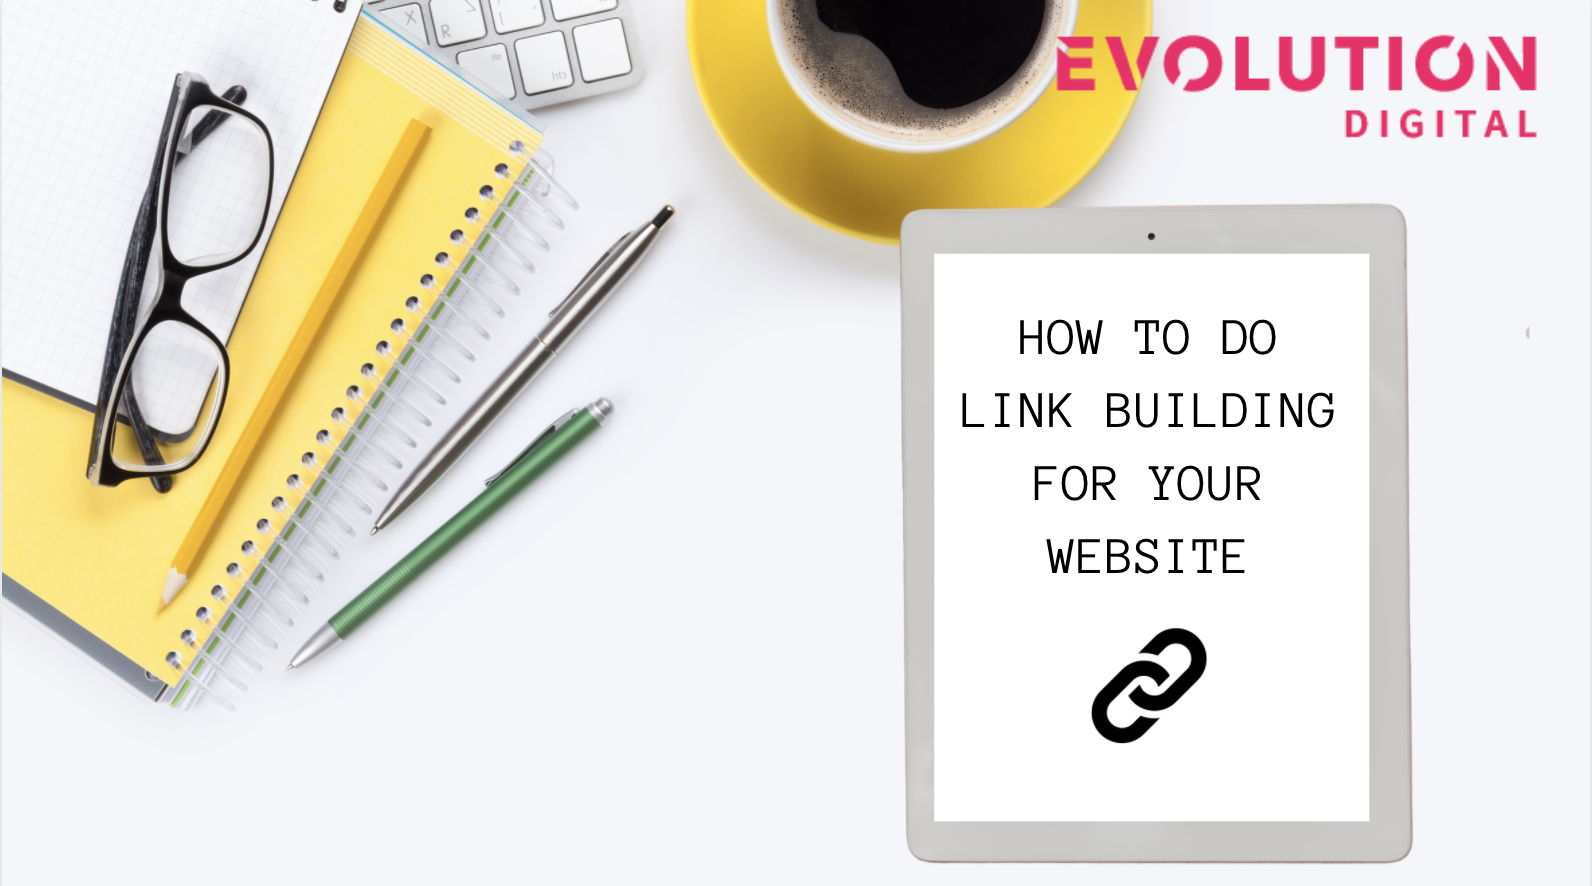 How To Do Link Building For Your Website